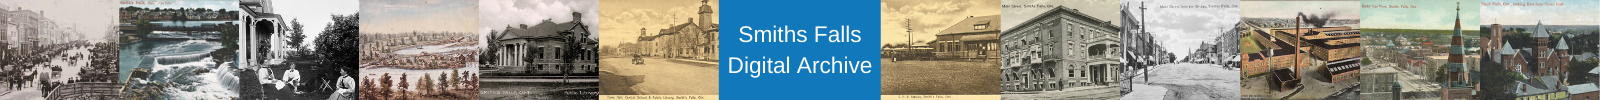 Smiths Falls Digital Archive